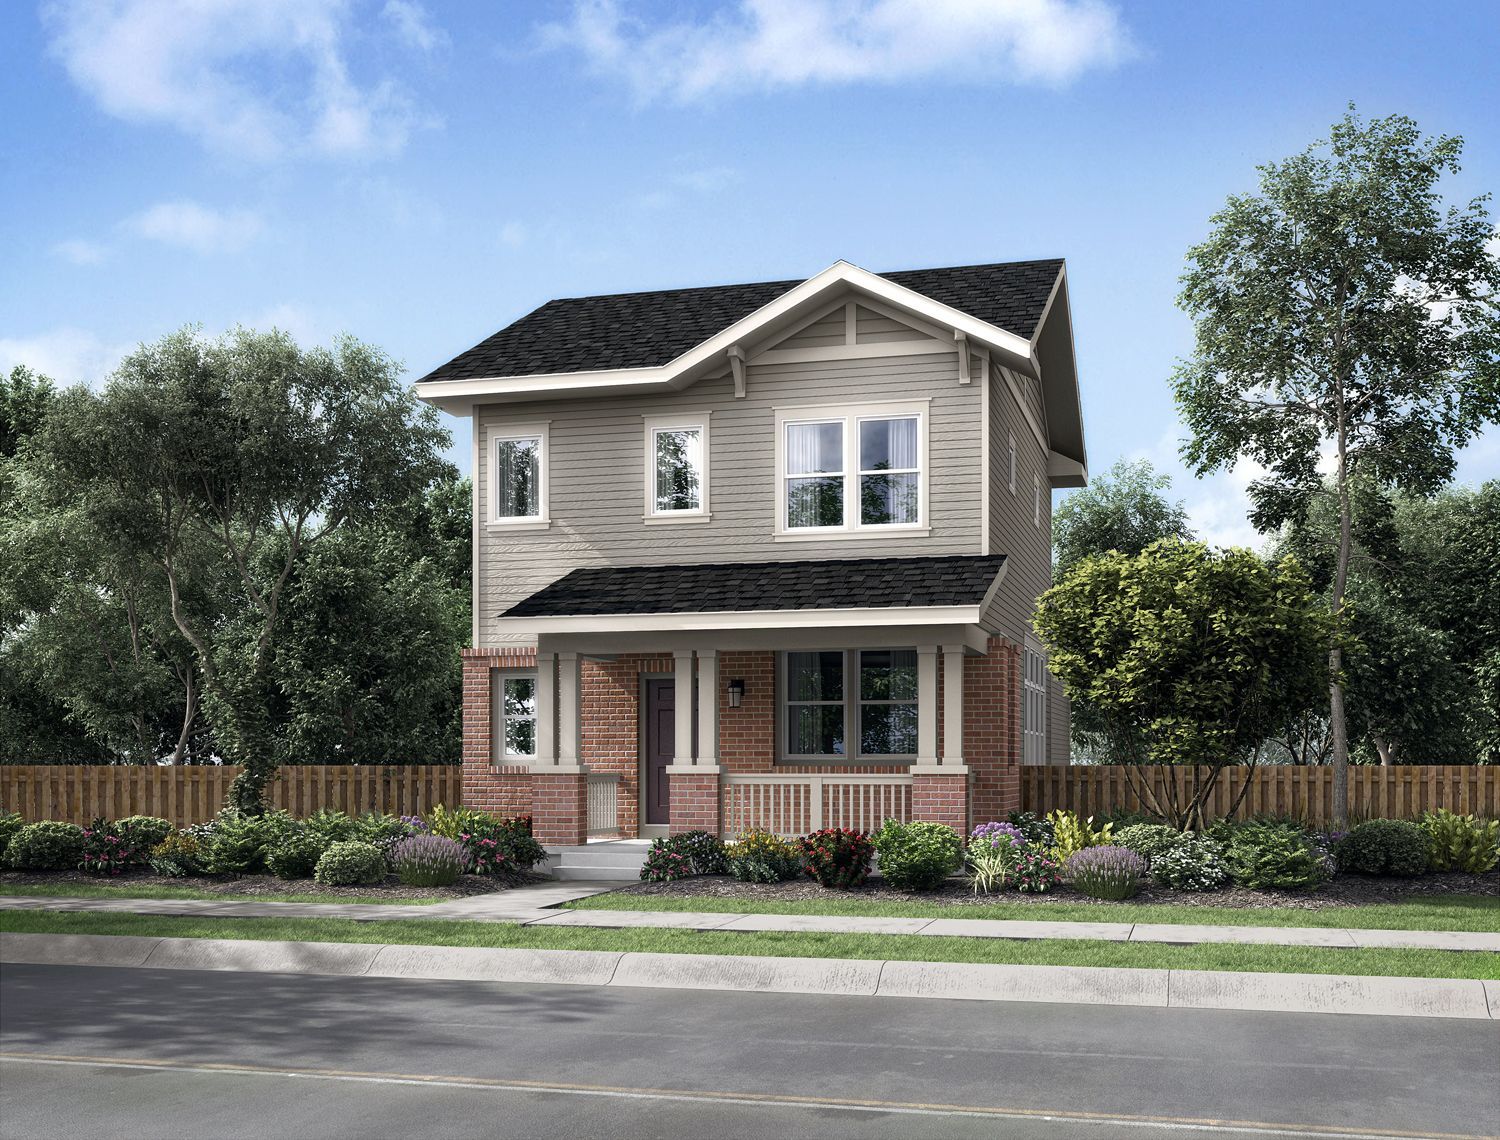 Solaris iii new homes in aurora co by thrive home builders for House aurora